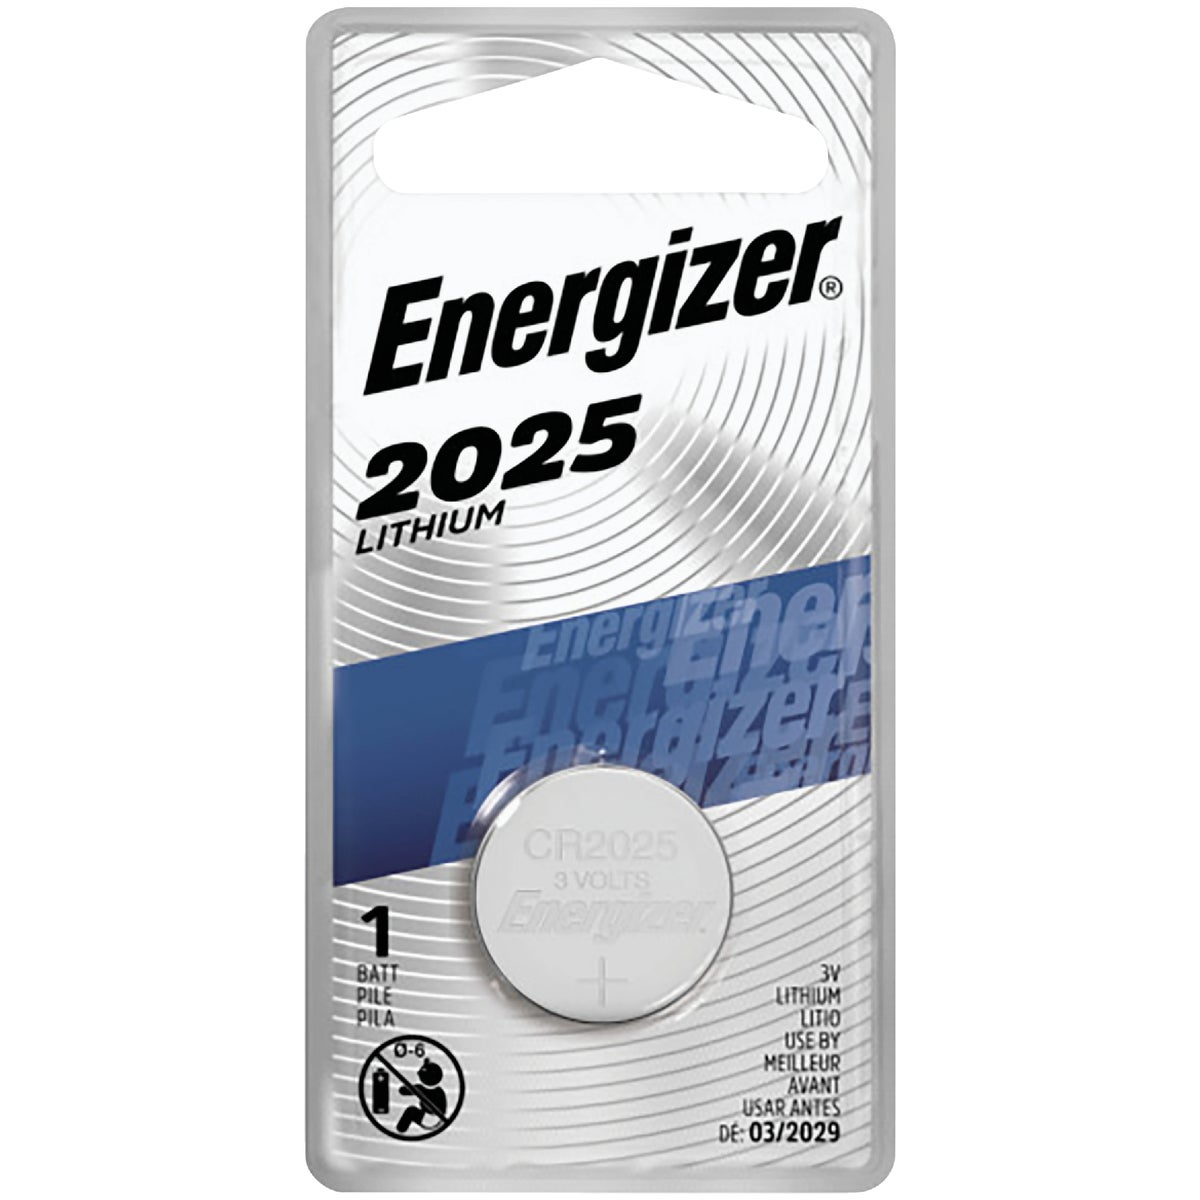 3V LITHIUM BATTERY - ECR2025BP by Energizer